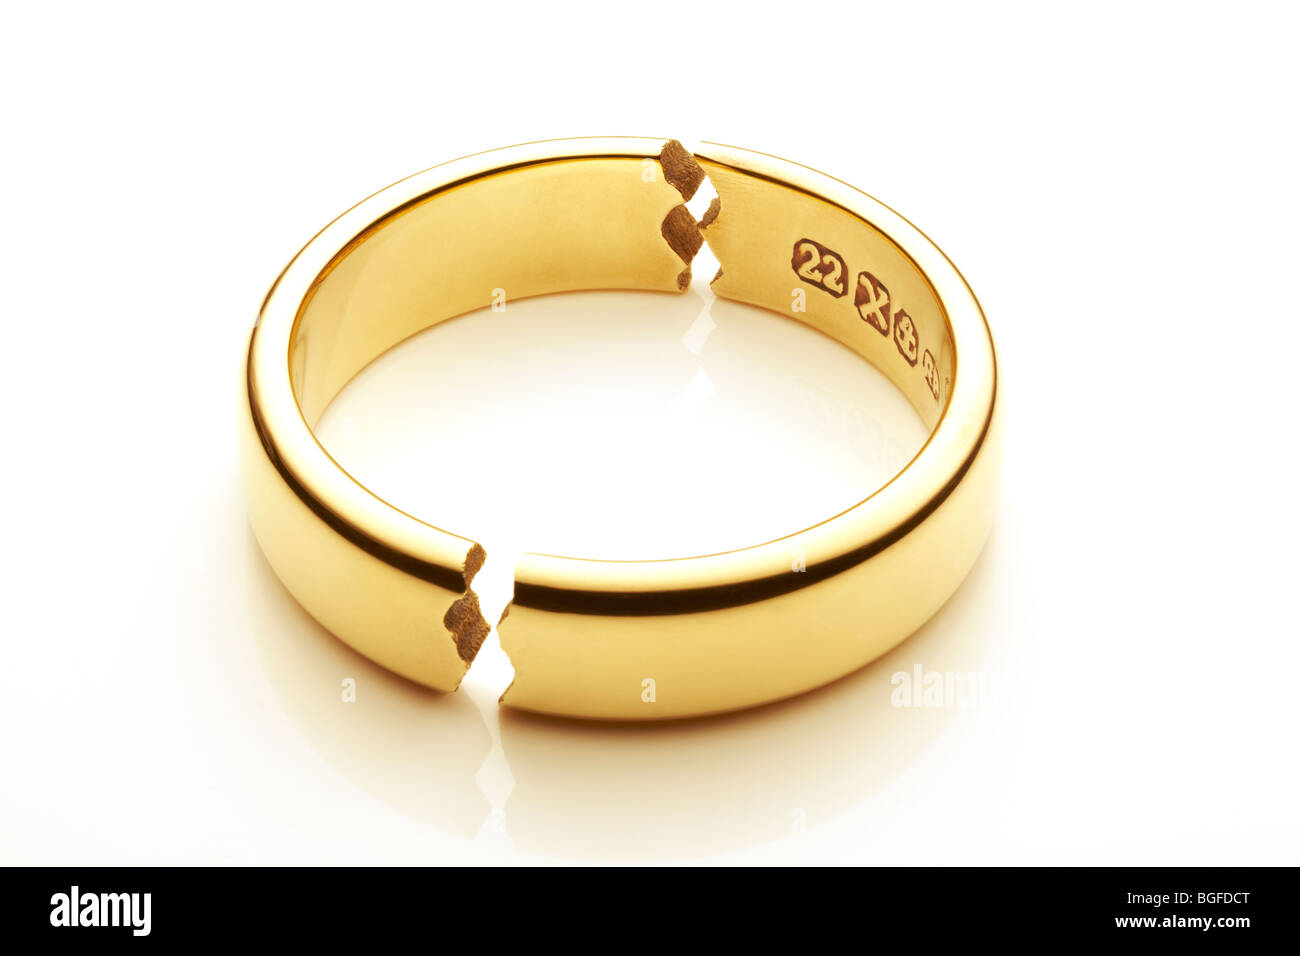 Broken Gold Wedding Ring Symbolizing Marriage Break Up - Stock Image